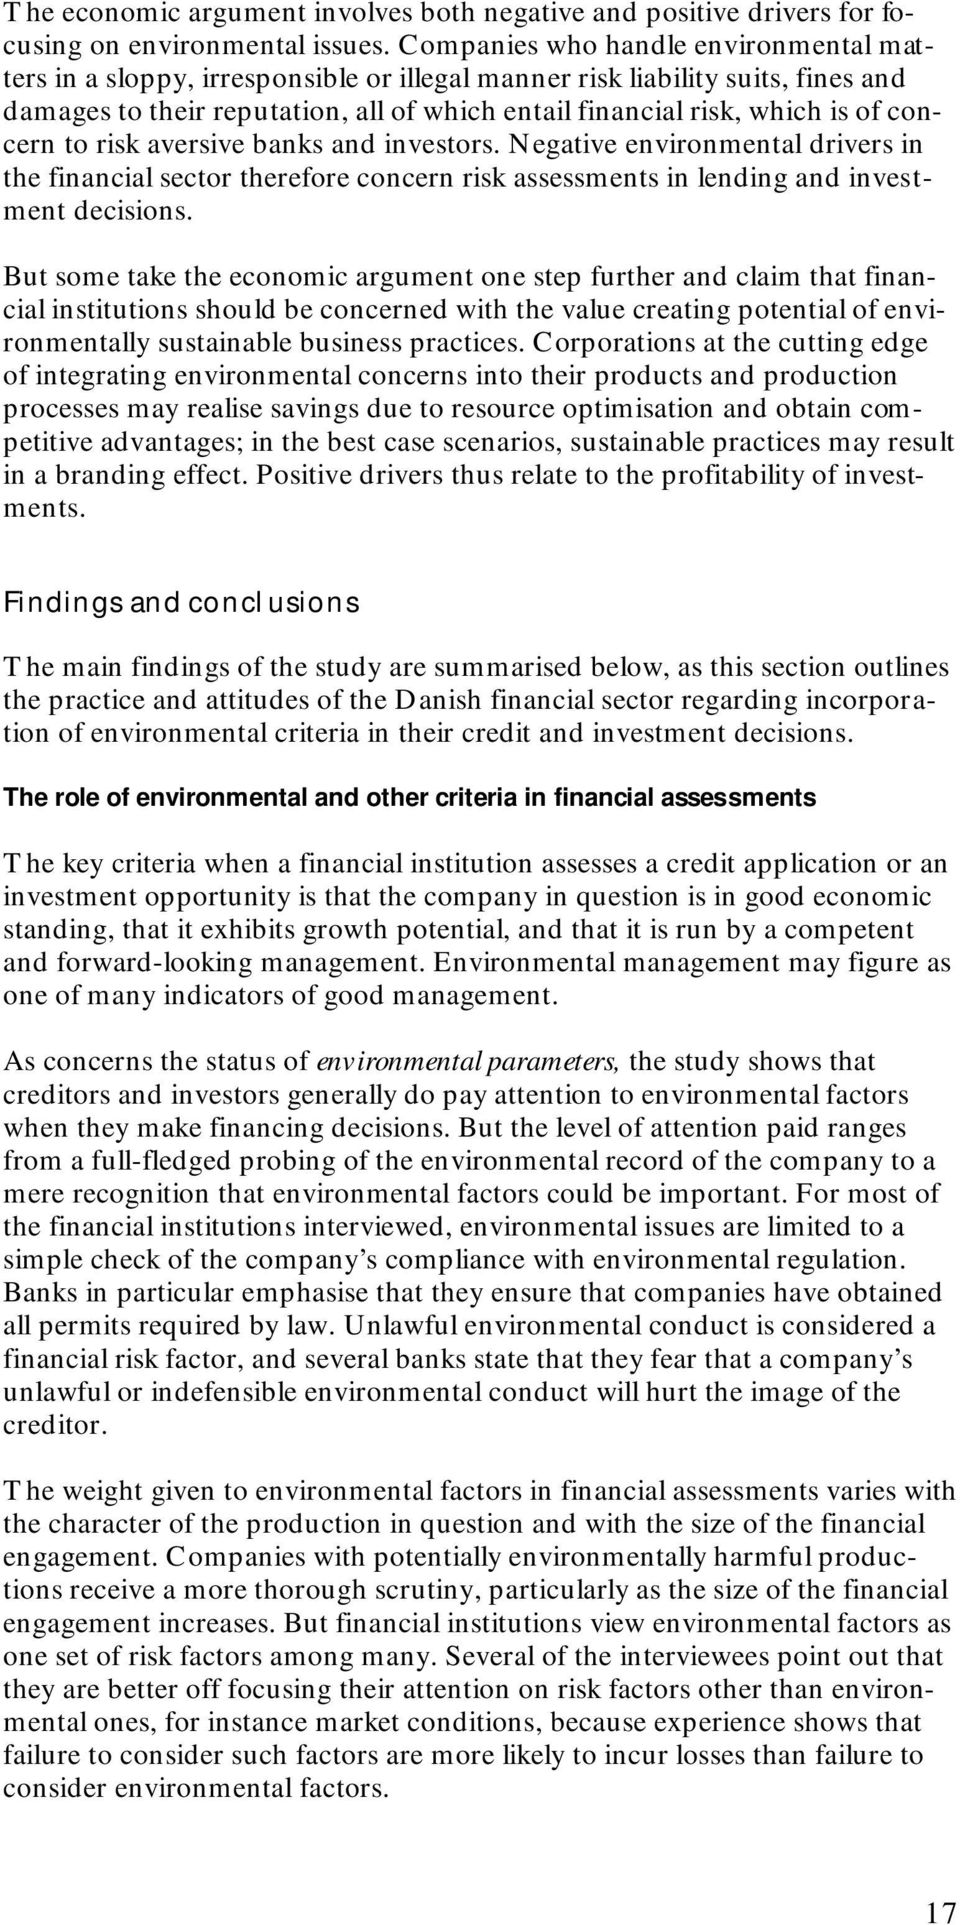 concern to risk aversive banks and investors. Negative environmental drivers in the financial sector therefore concern risk assessments in lending and investment decisions.